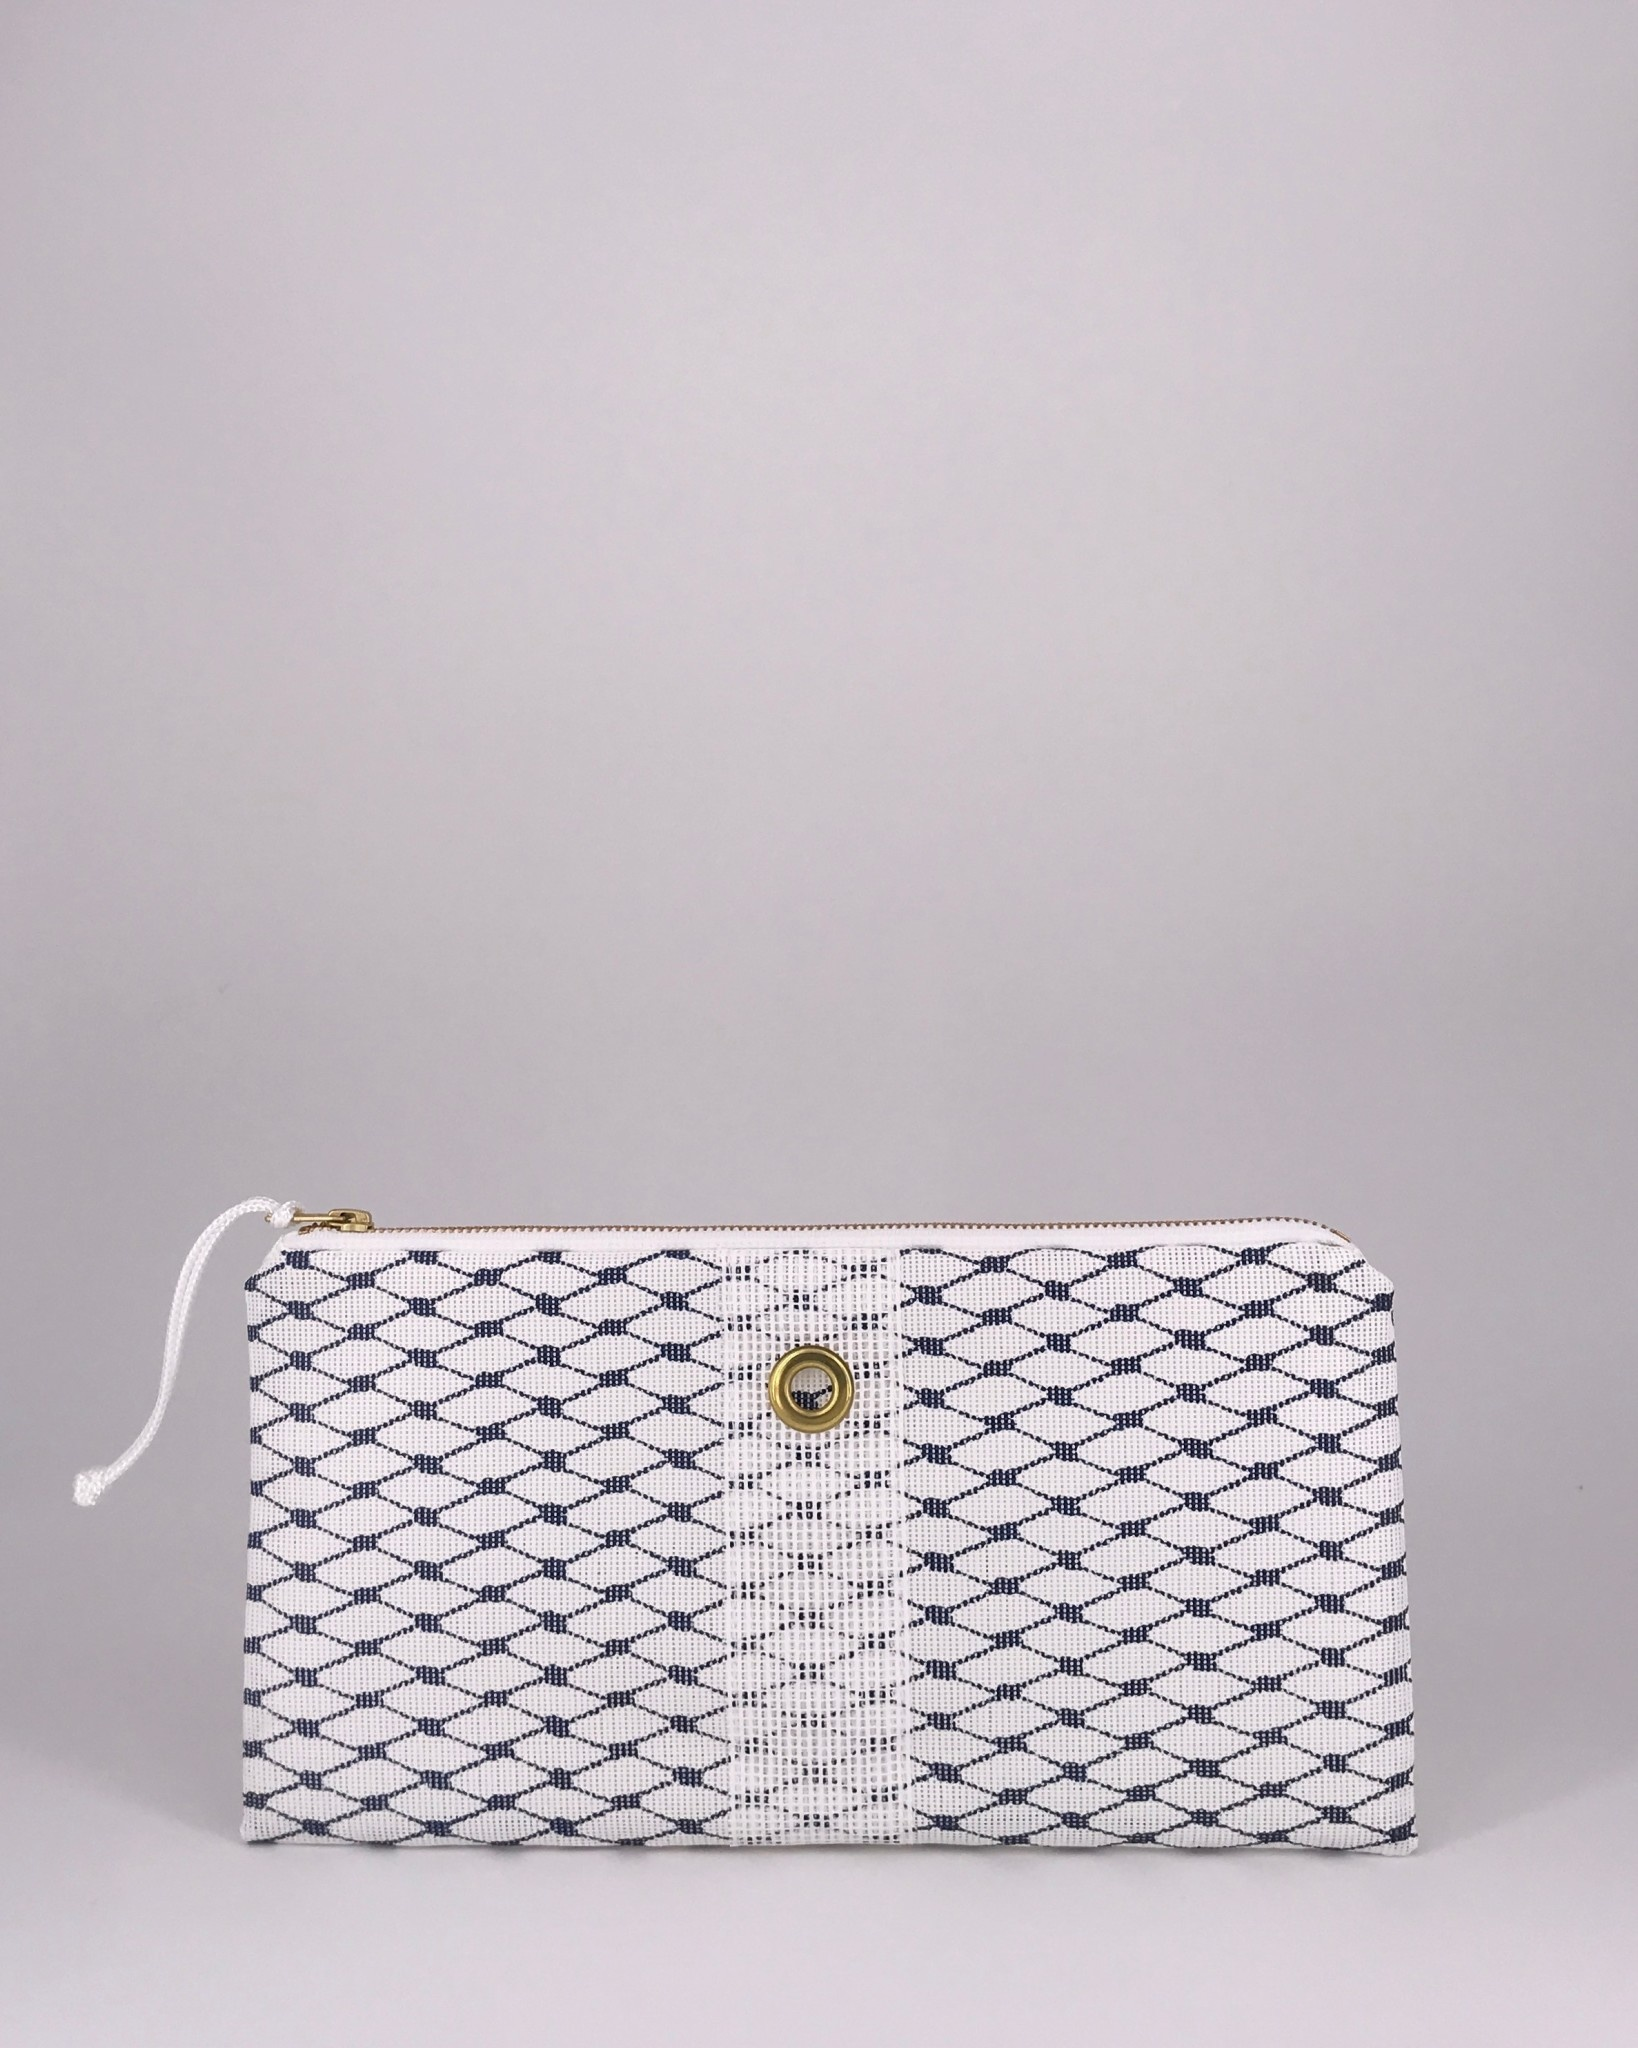 Alaina Marie ® Sailor Blue & White Clutch